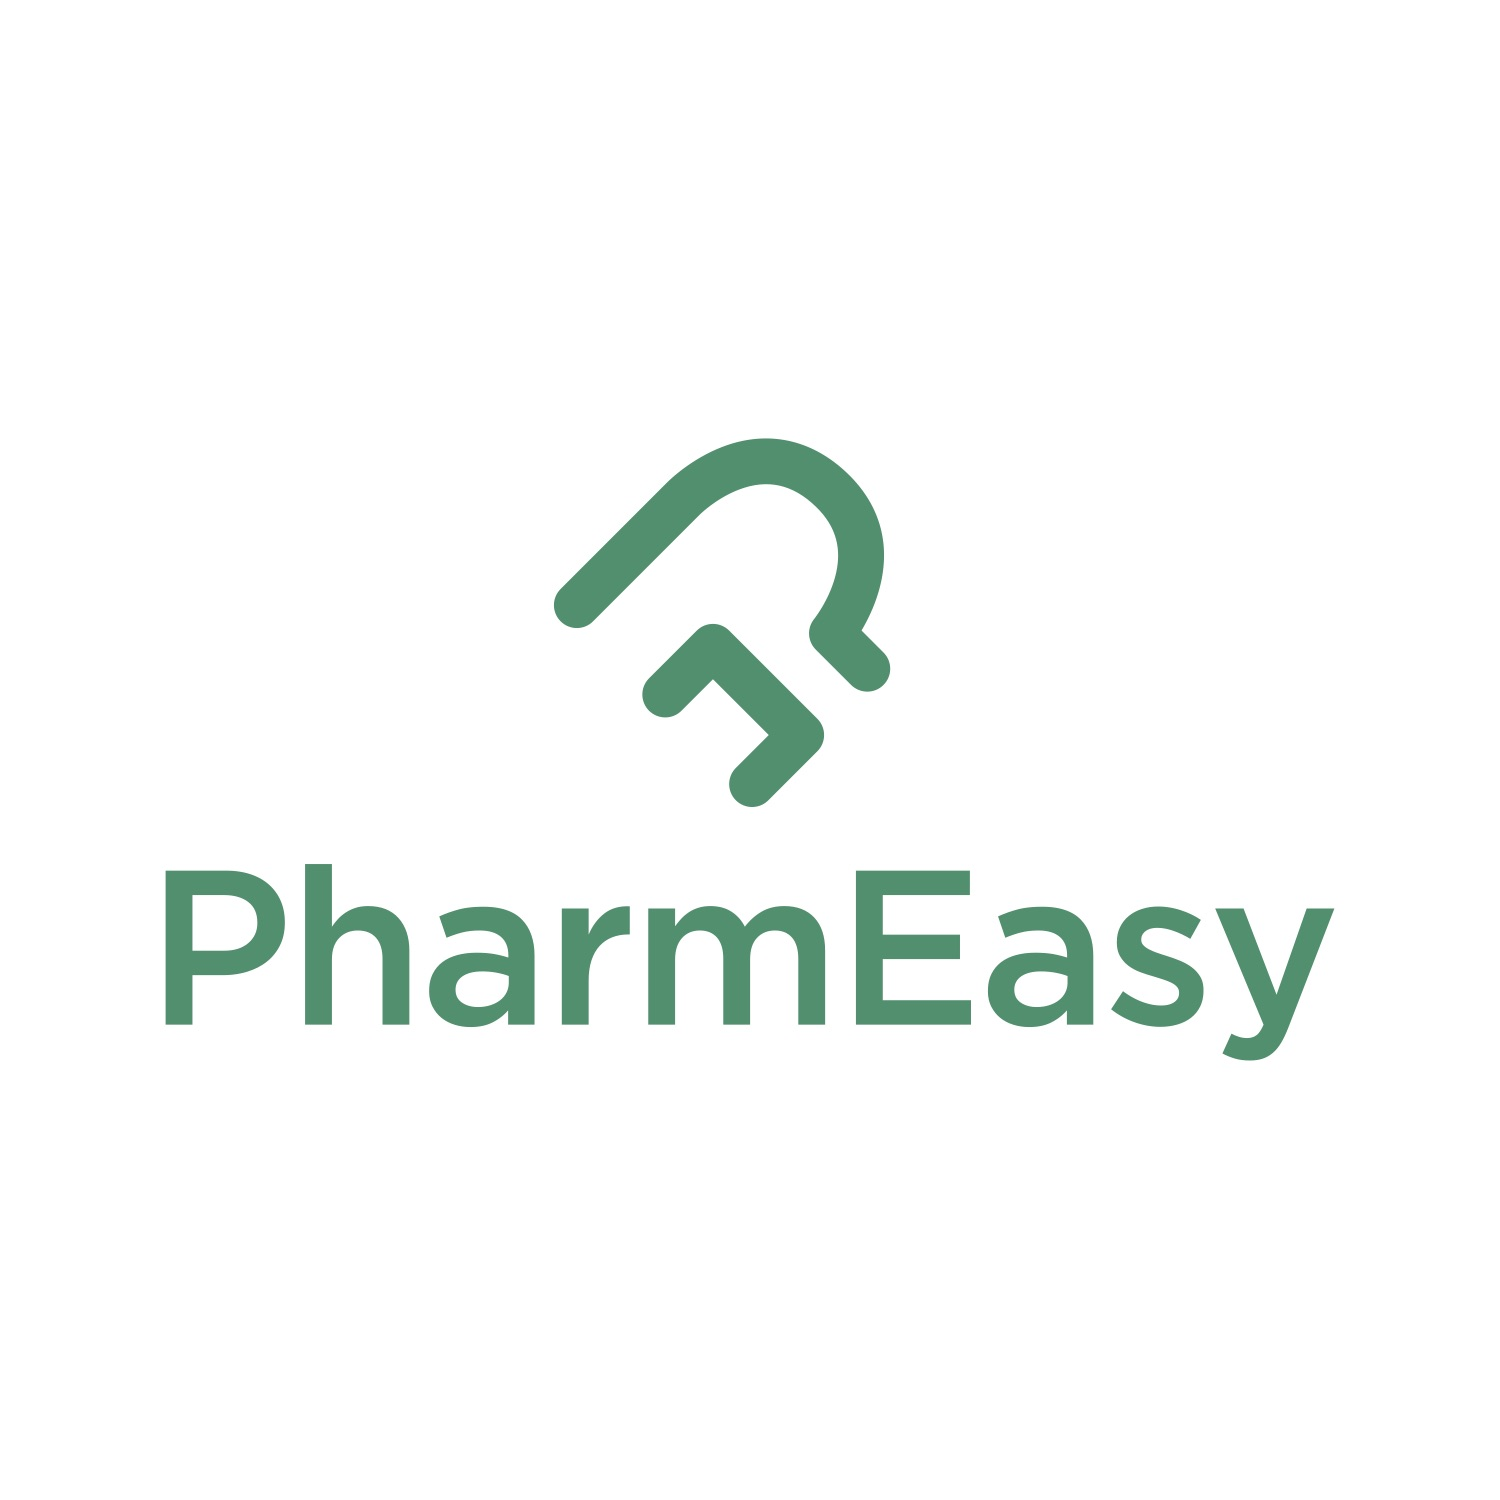 pharm-easy-in-logo